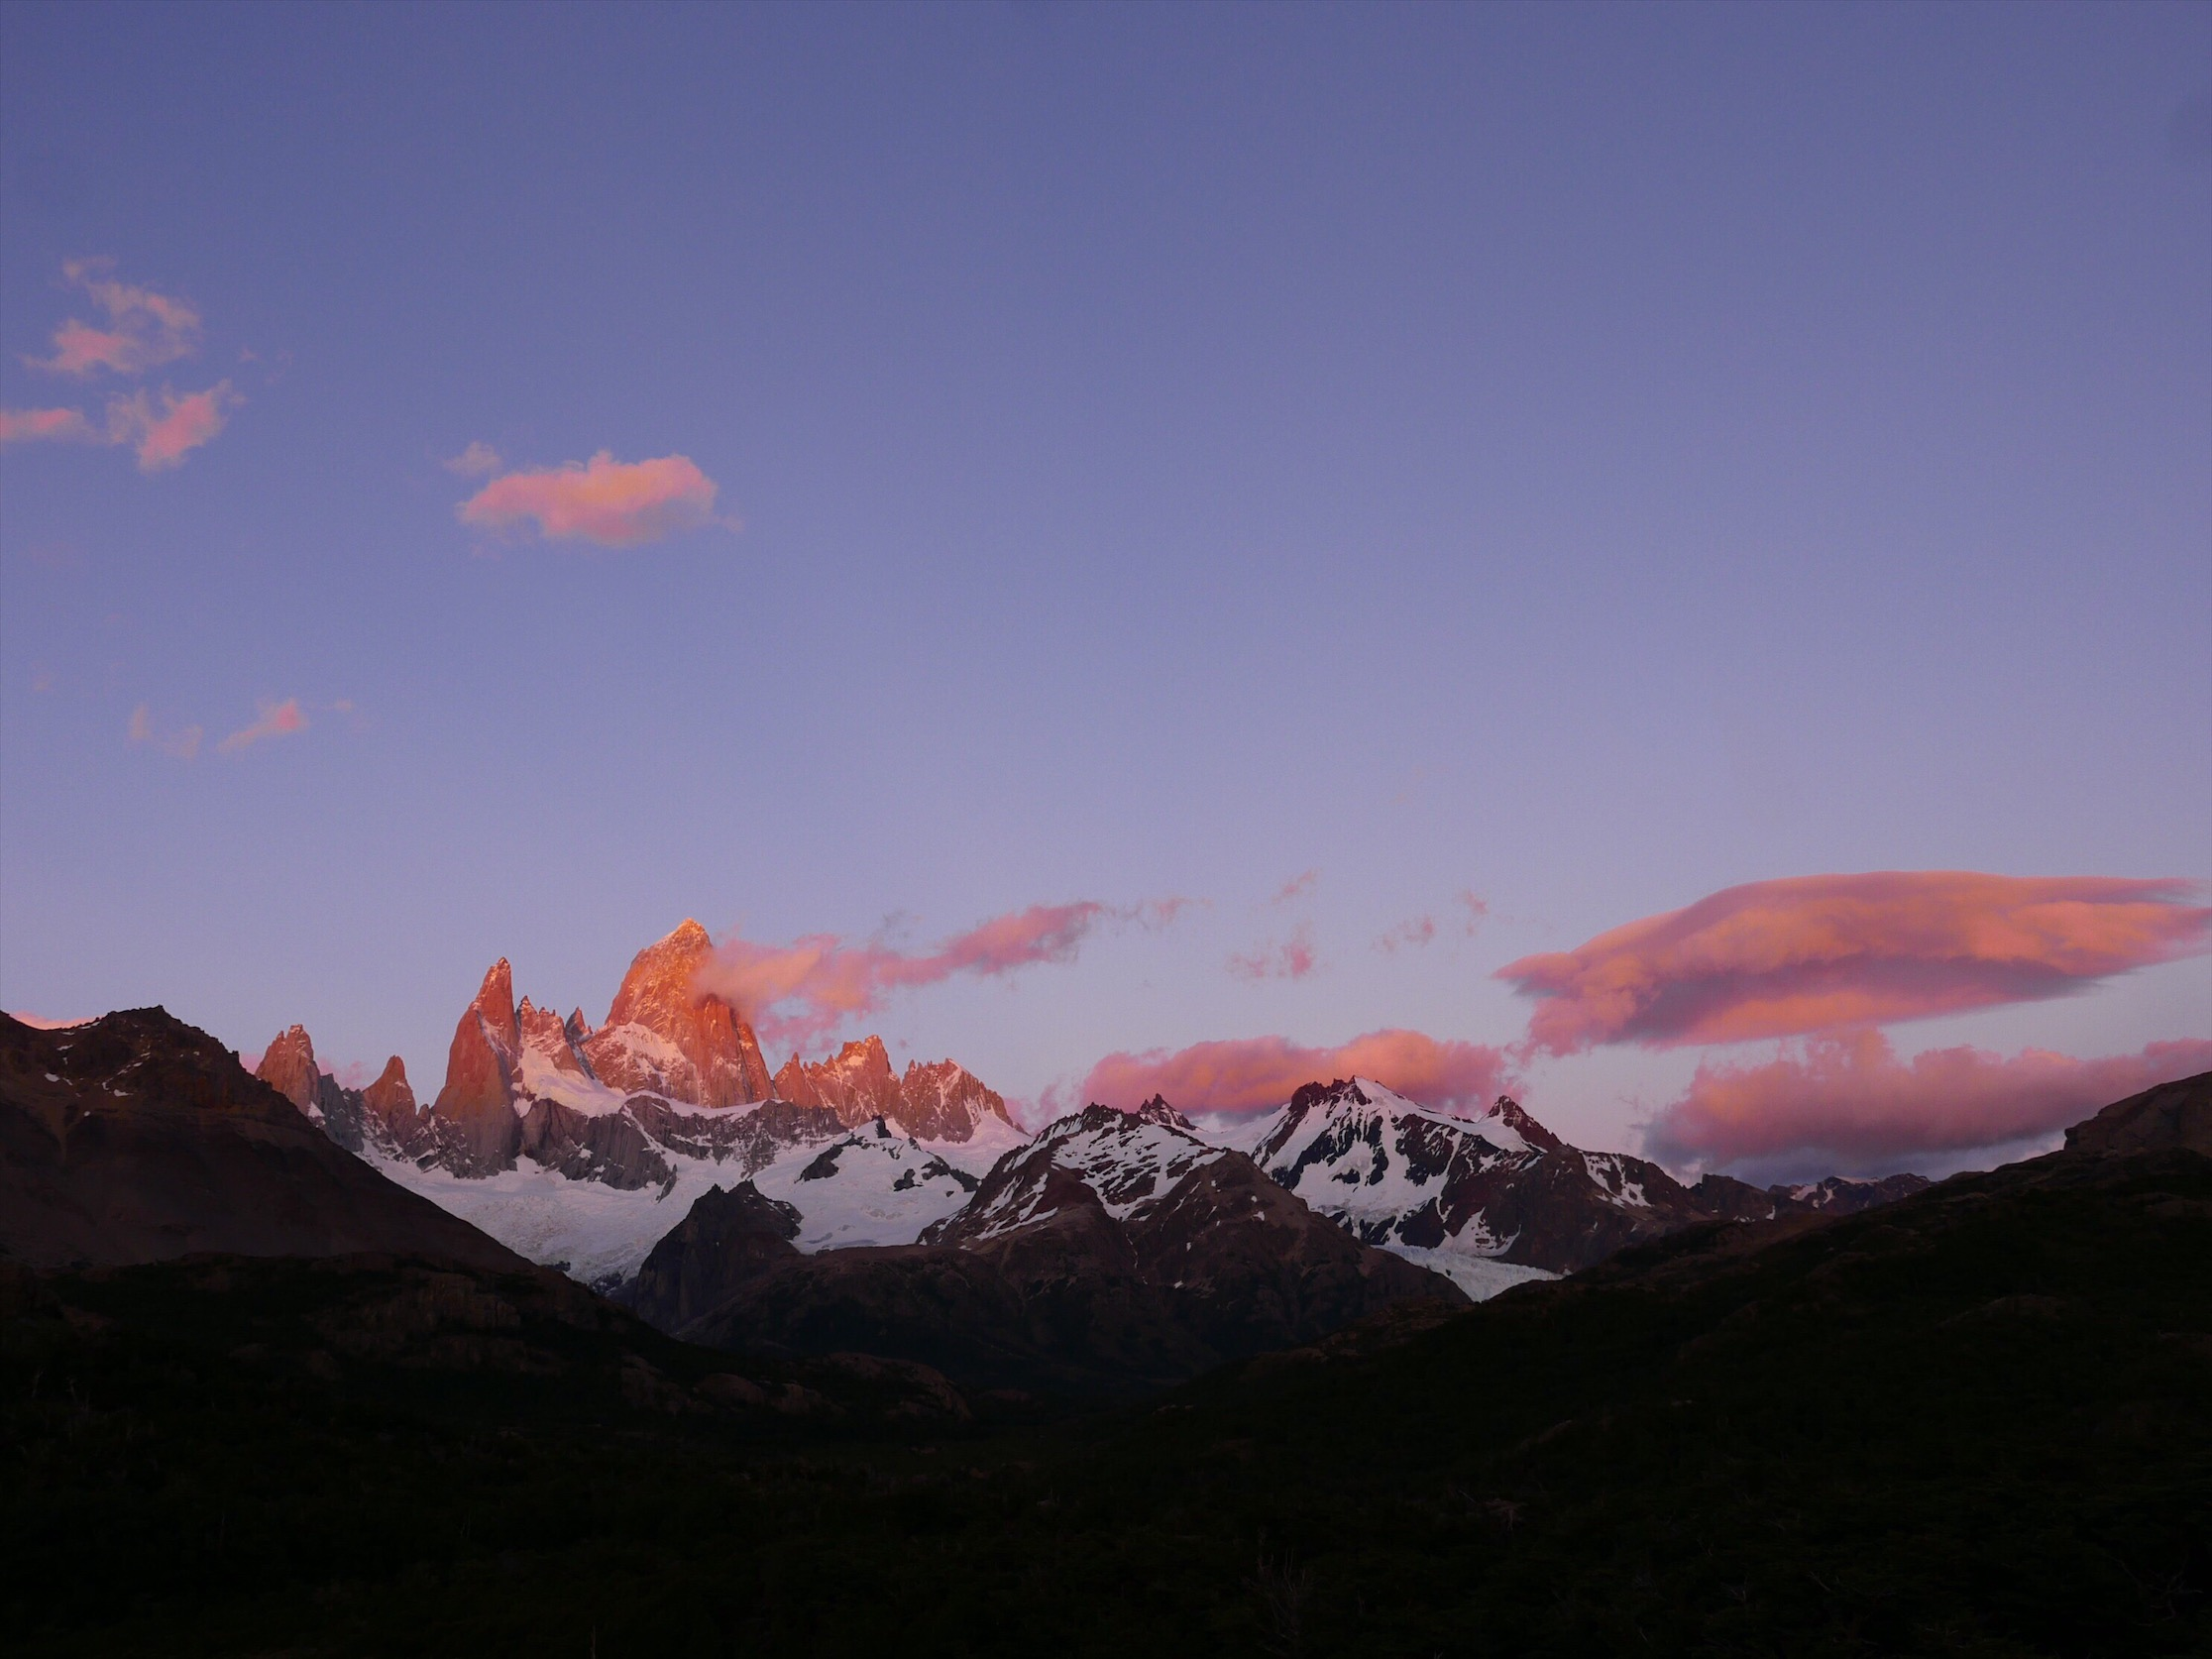 A 3:45AM wake up had us cresting the last ridge just as the very top of Fitz Roy illuminated. The sunrise gradient grew—from the tip down—eventually painting the entire horizon. Much like other hike excursions on this trip, we ended up in the right place, at the right moment, without planning anything beyond T-bone's early call time.